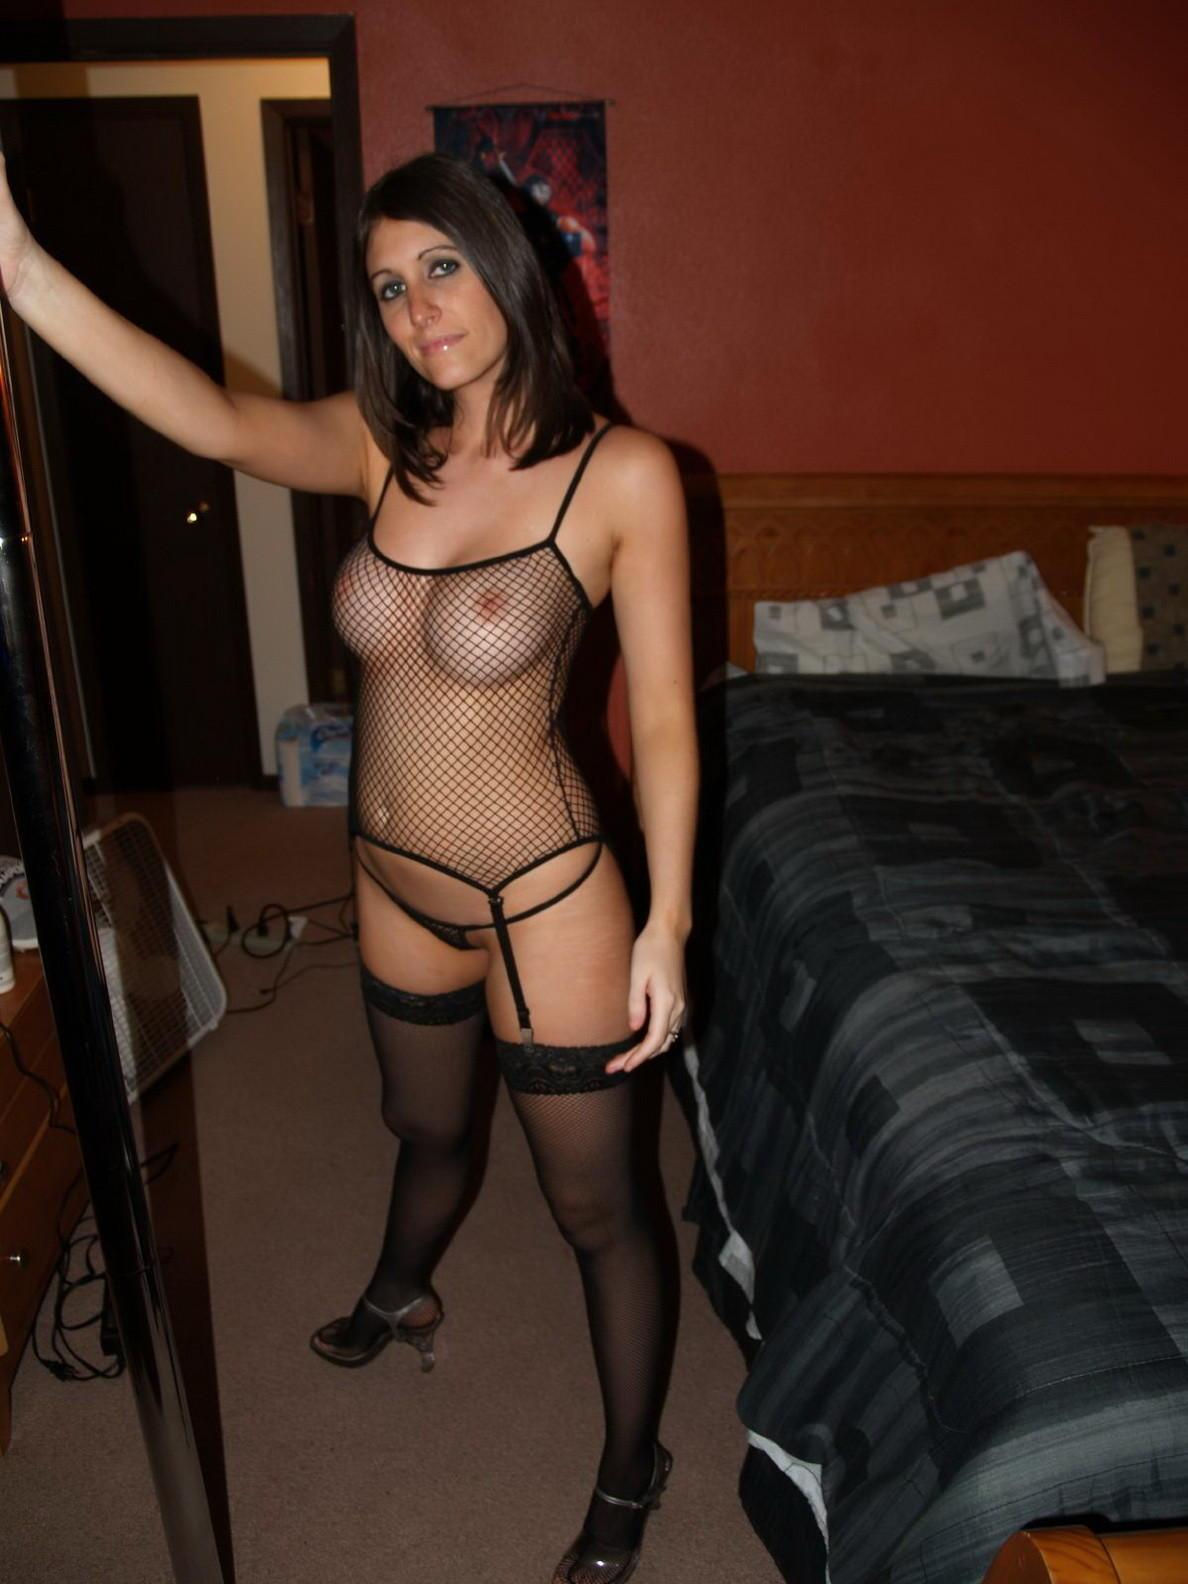 Dark haired female with big boobs exposes prefect body in black lingerie